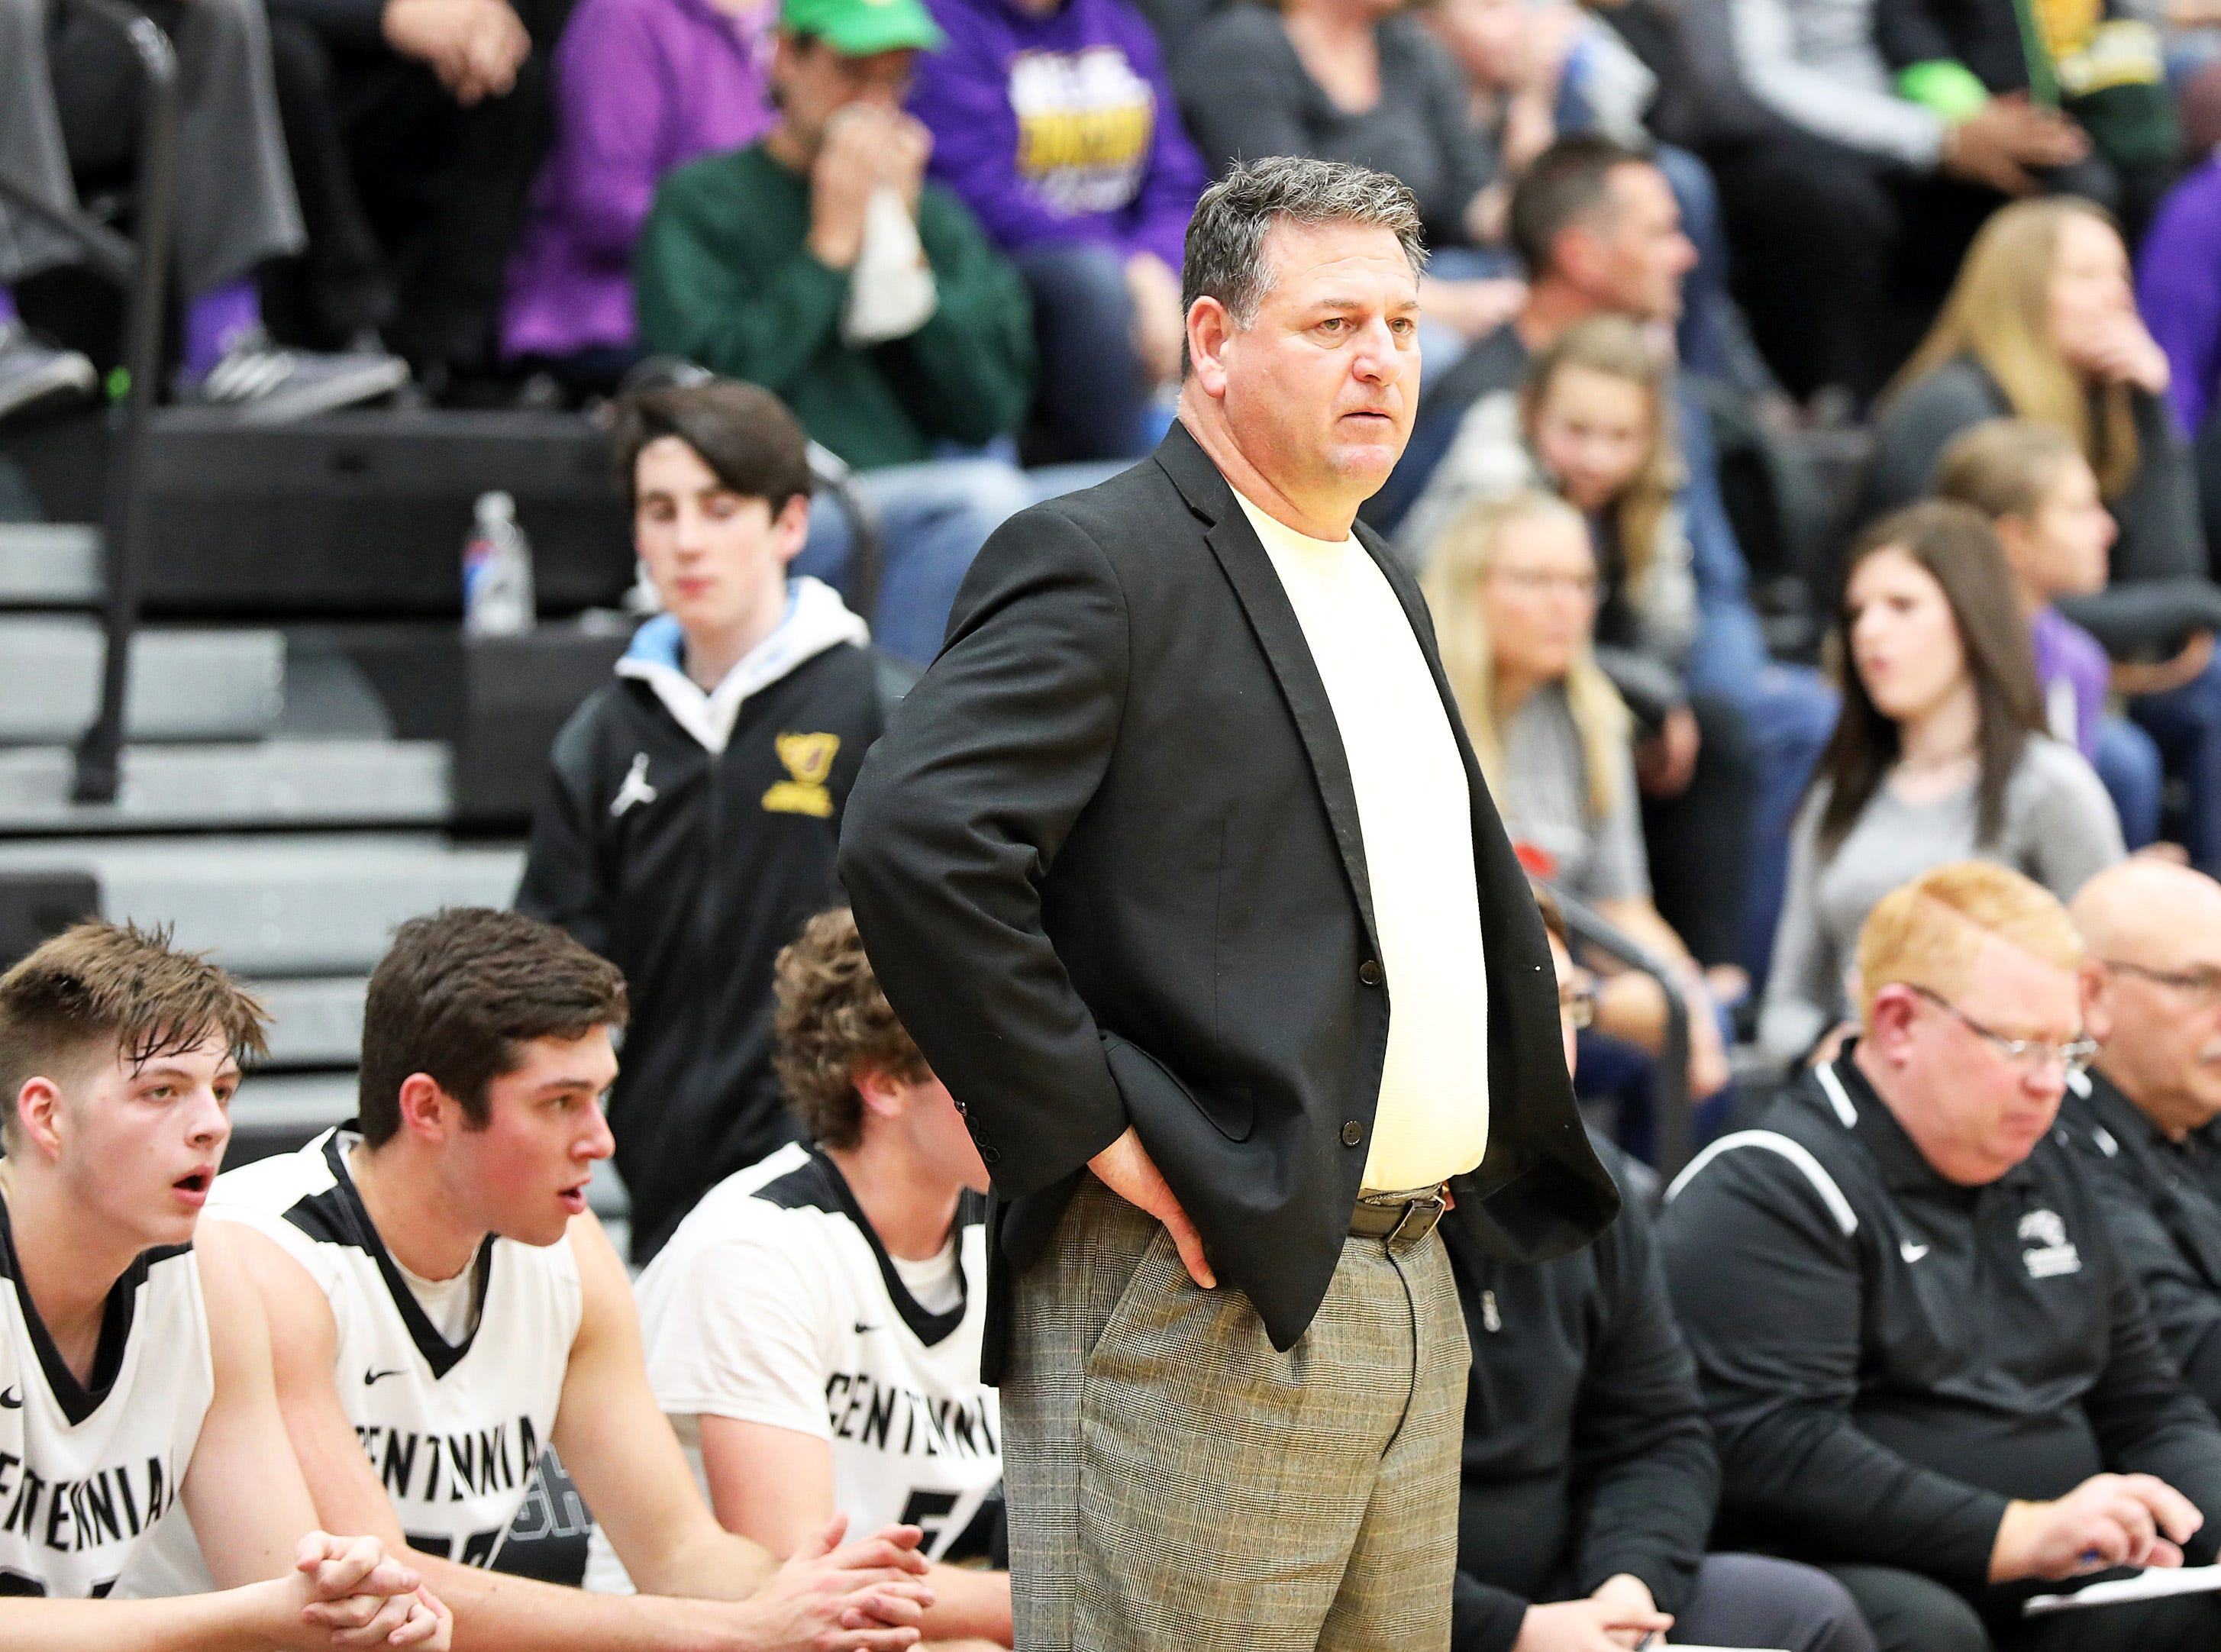 Ankeny Centennial head coach Bob Fontana watches his team execute a play as the Johnston Dragons compete against the Ankeny Centennial Jaguars in high school boys basketball on Friday, Jan. 4, 2019 at Ankeny Centennial High School.